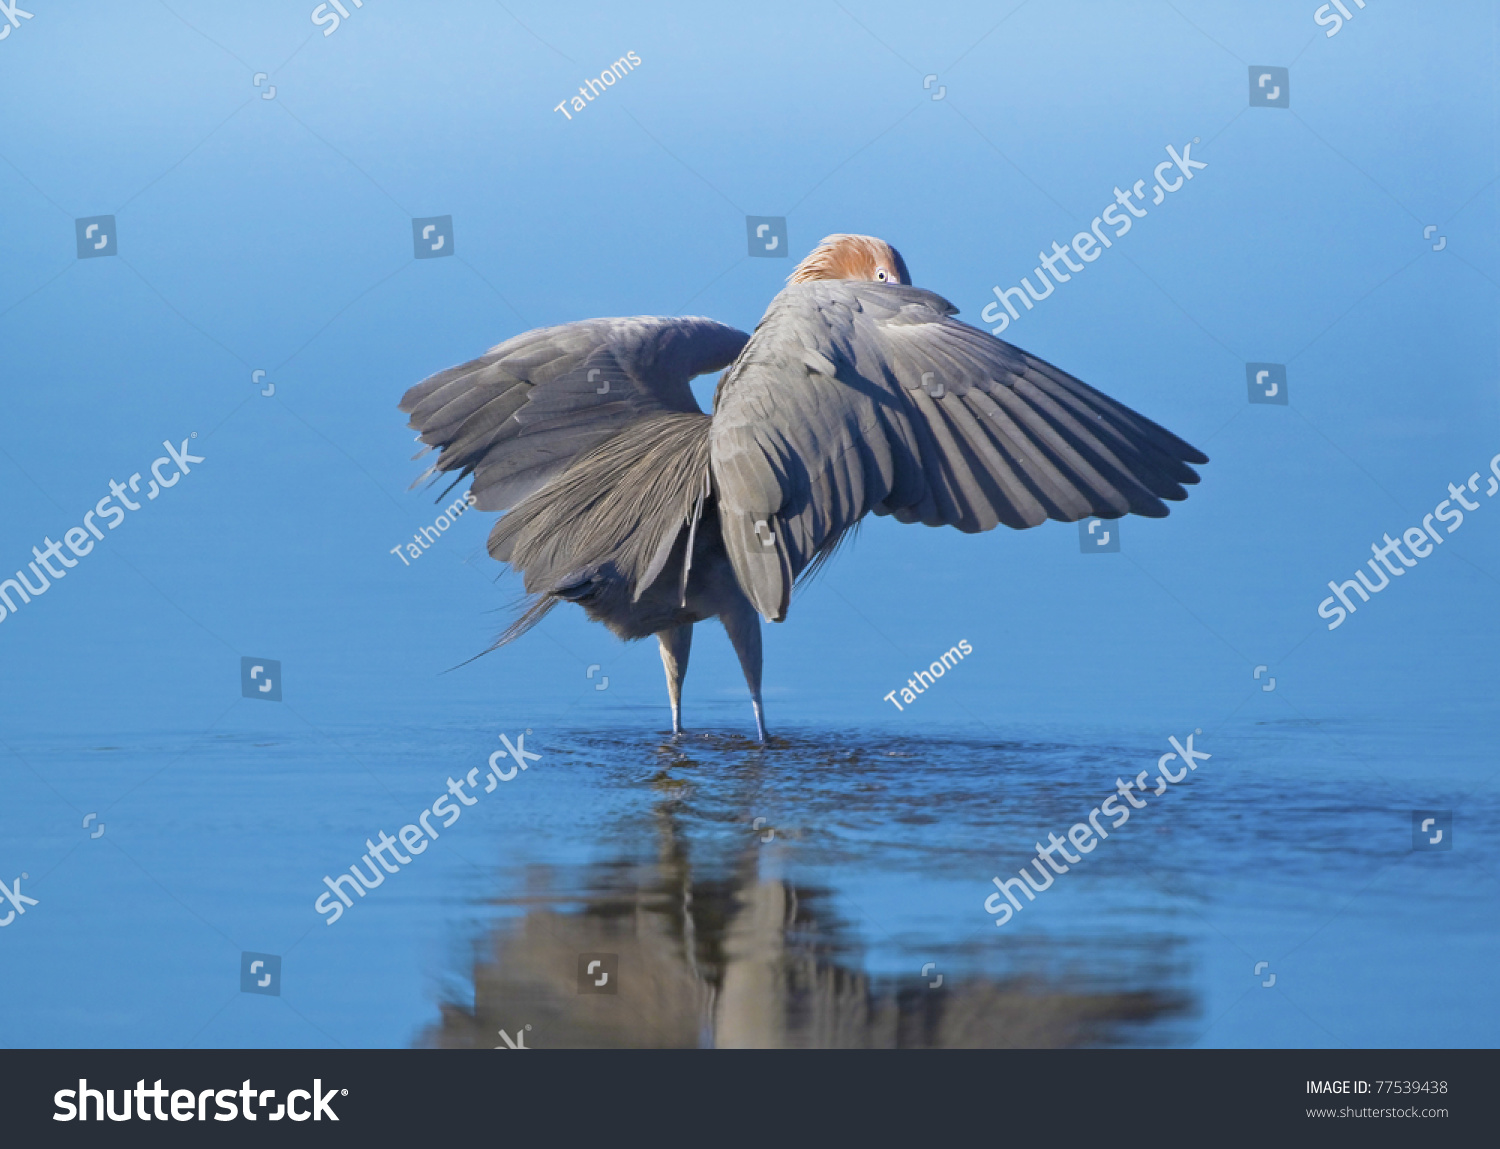 The look. Reddish Egret shading water with wings while hunting fish. Latin name - Egretta rufescens.